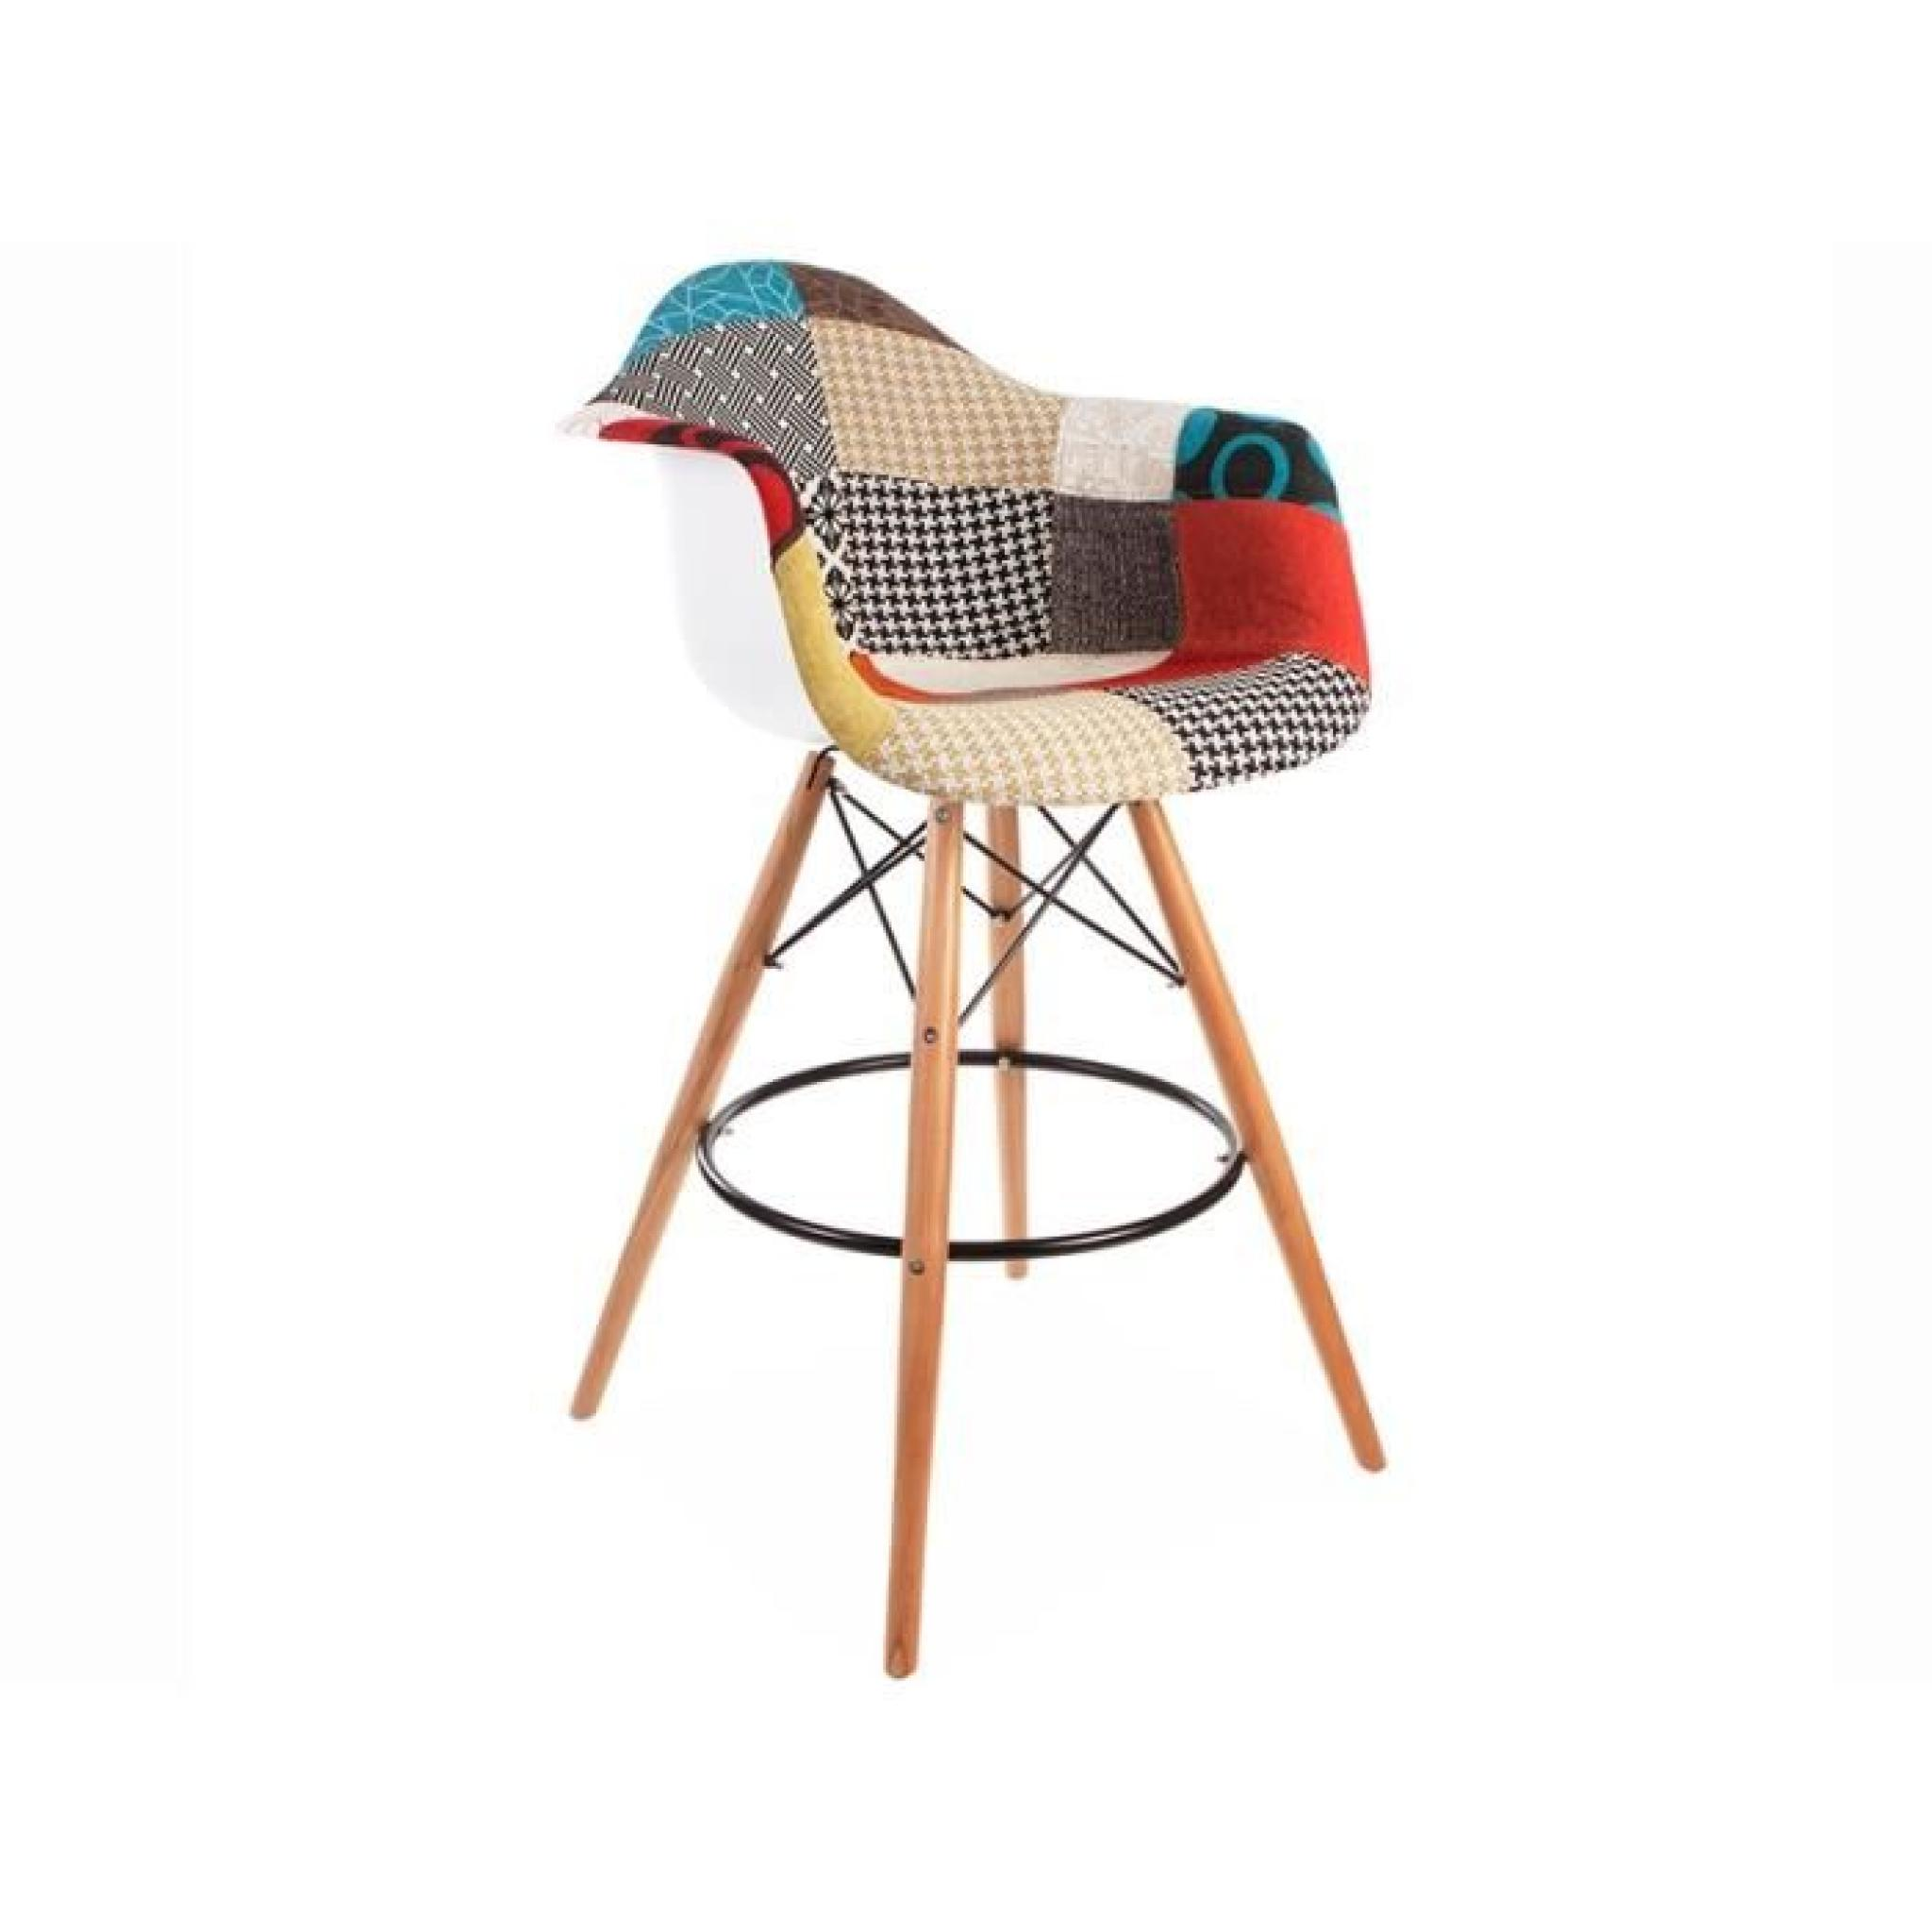 Chaise eames pas cher amazing of chaises eames pas cher for Chaise eames dsw style patchwork